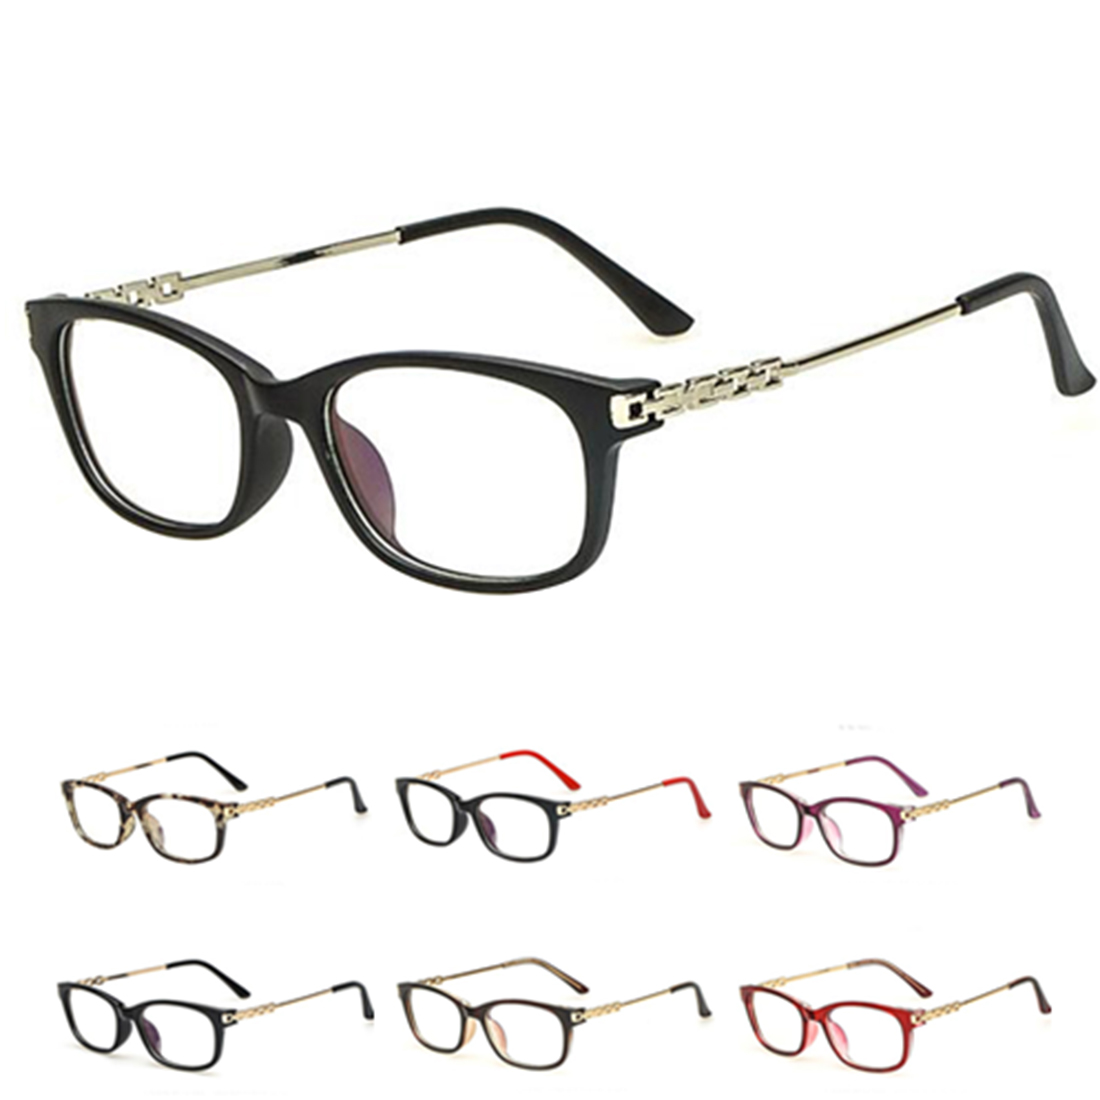 Metal Eyeglasses Frame Fashion Designed Men Women Fashion ...